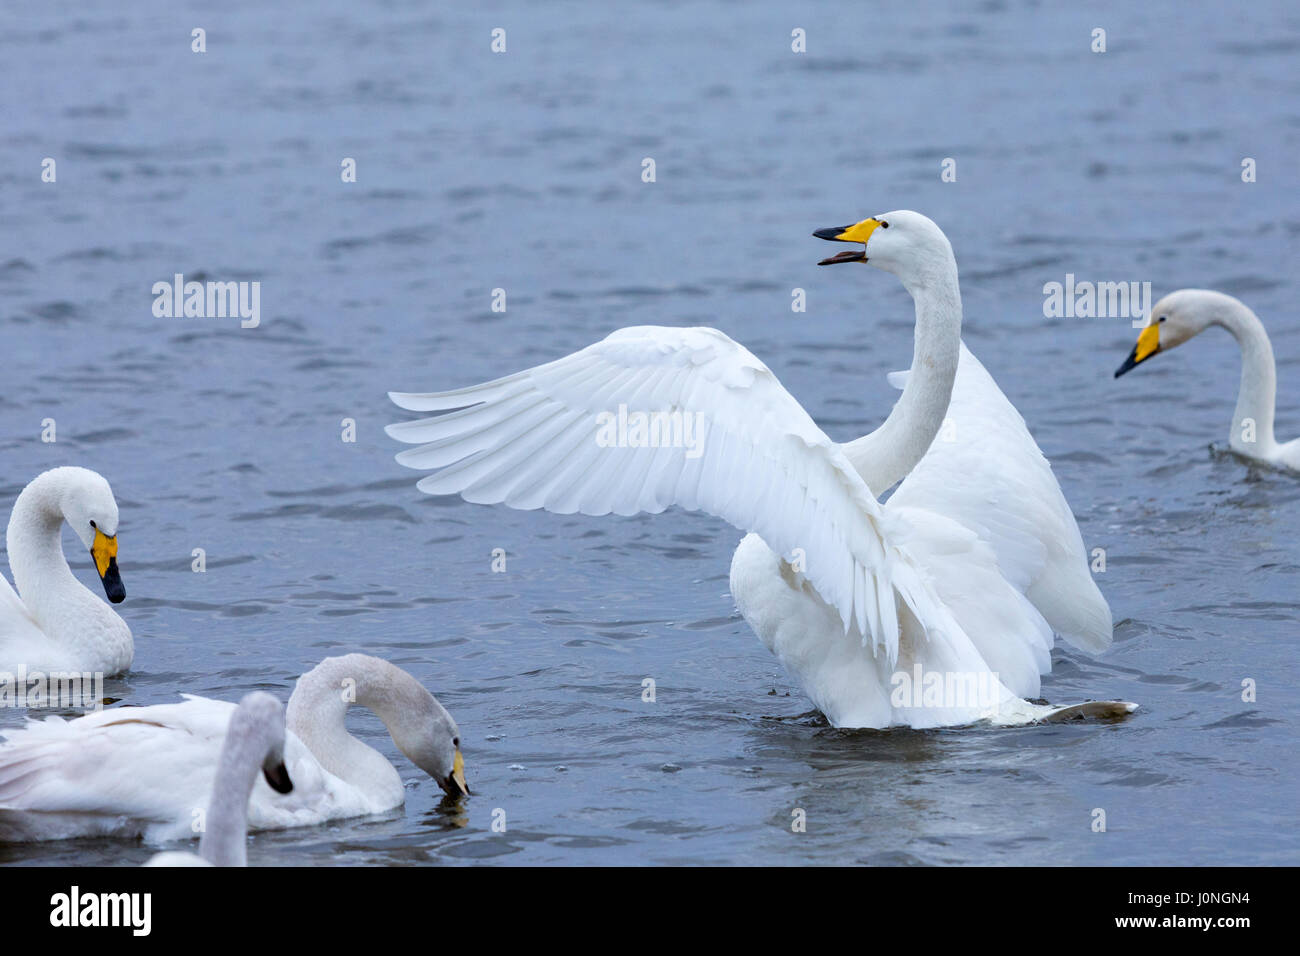 Group of Whooper Swans, Cygnus cygnus, one flapping wings at Welney Wetland Centre, Norfolk, UK - Stock Image